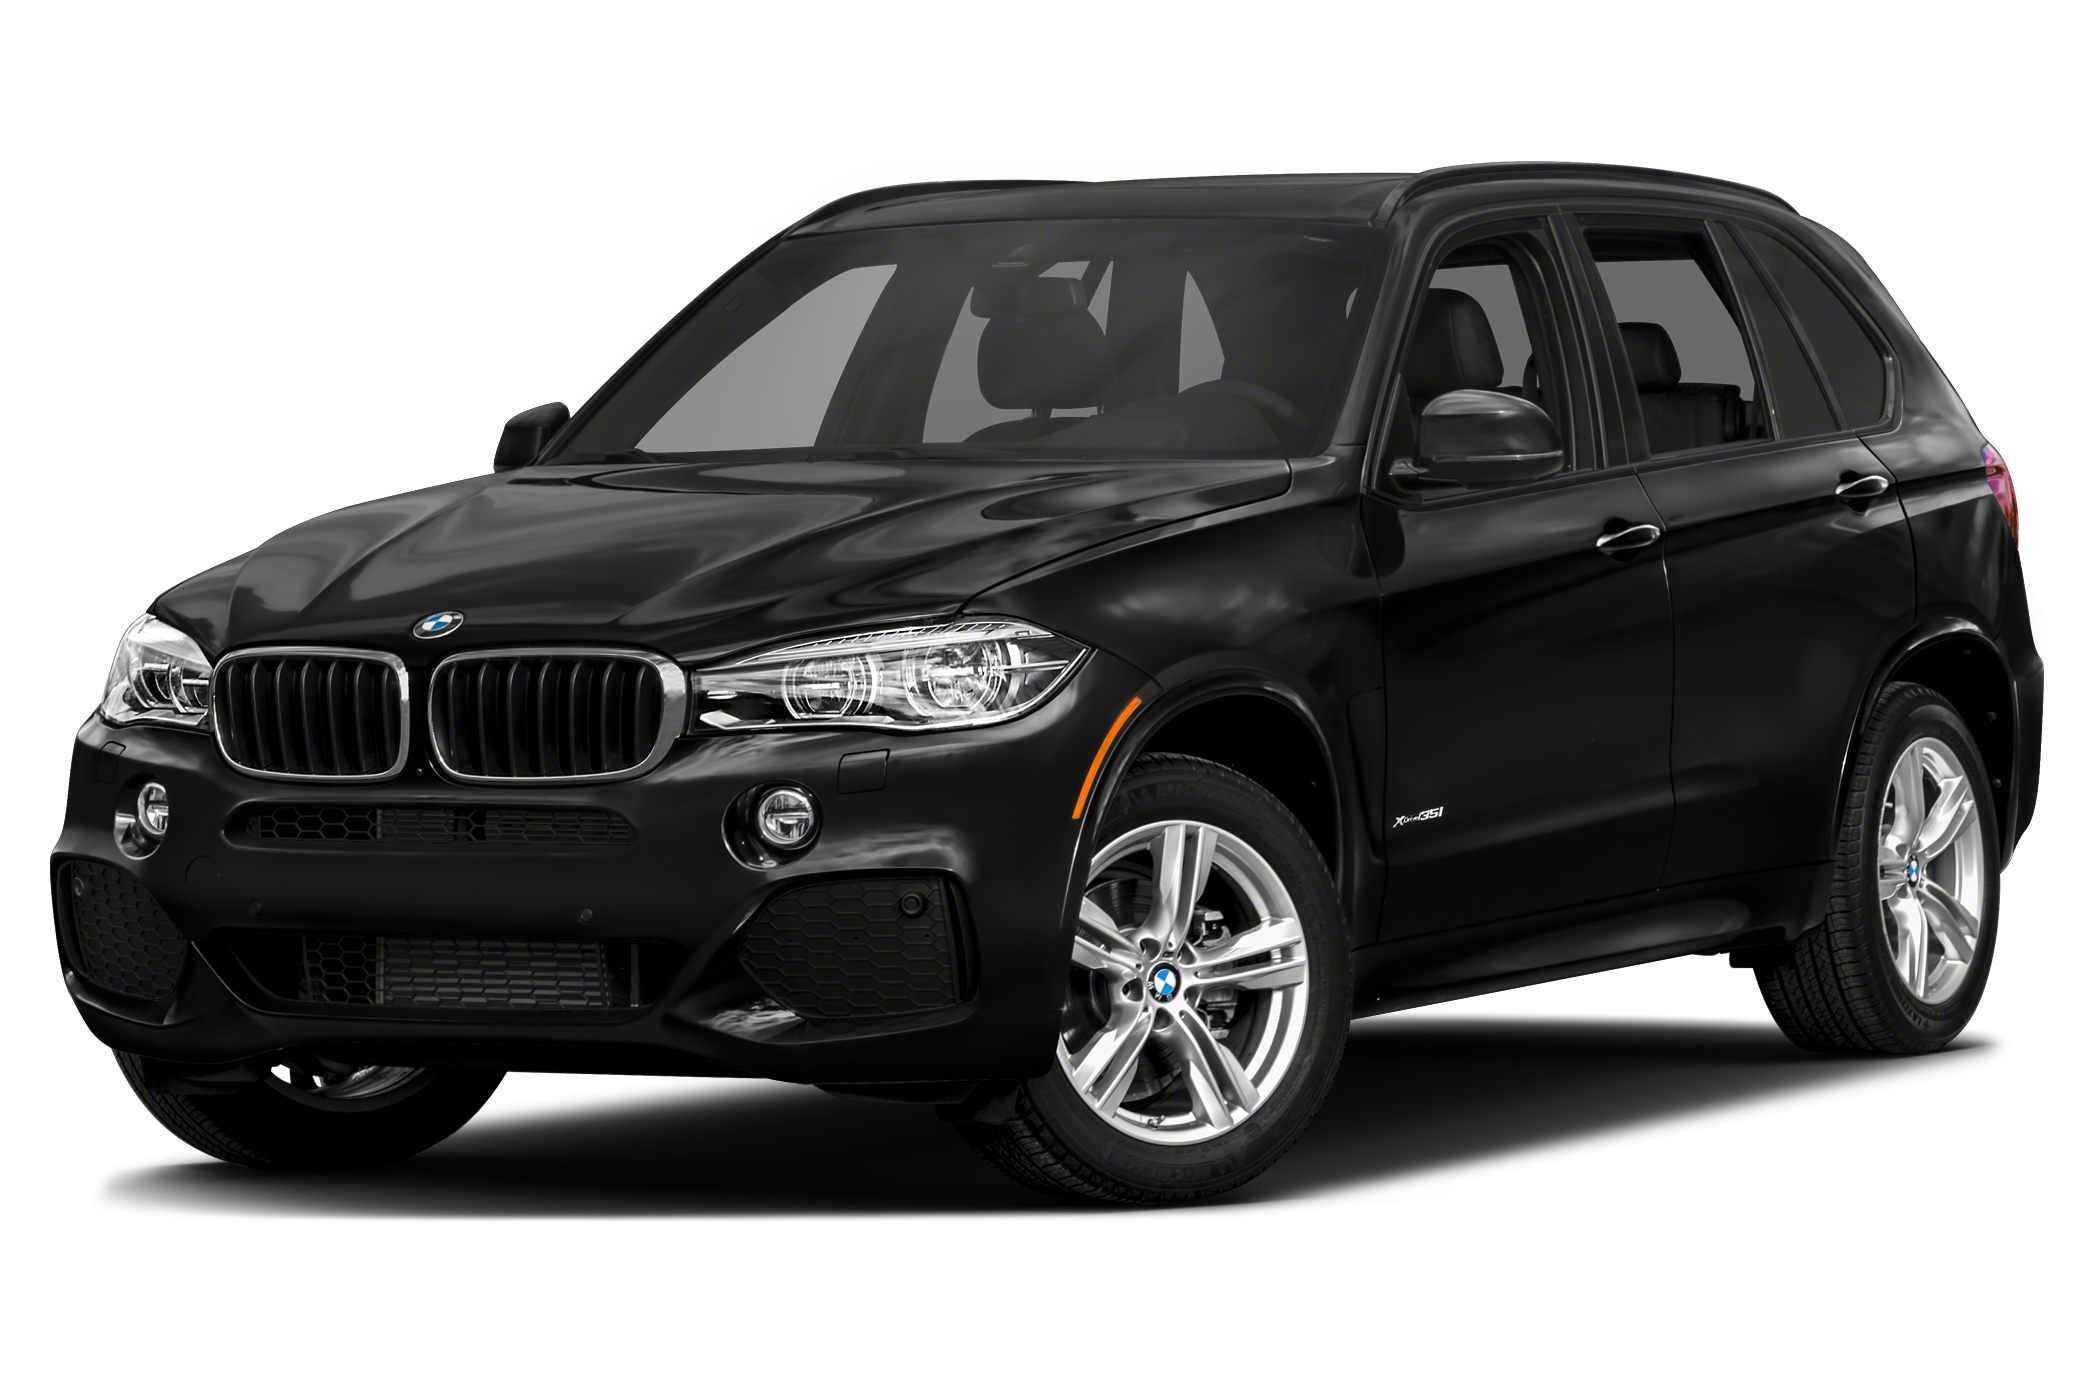 2017 Bmw X5 Xdrive50i 4dr All Wheel Drive Sports Activity Vehicle Specs And Prices